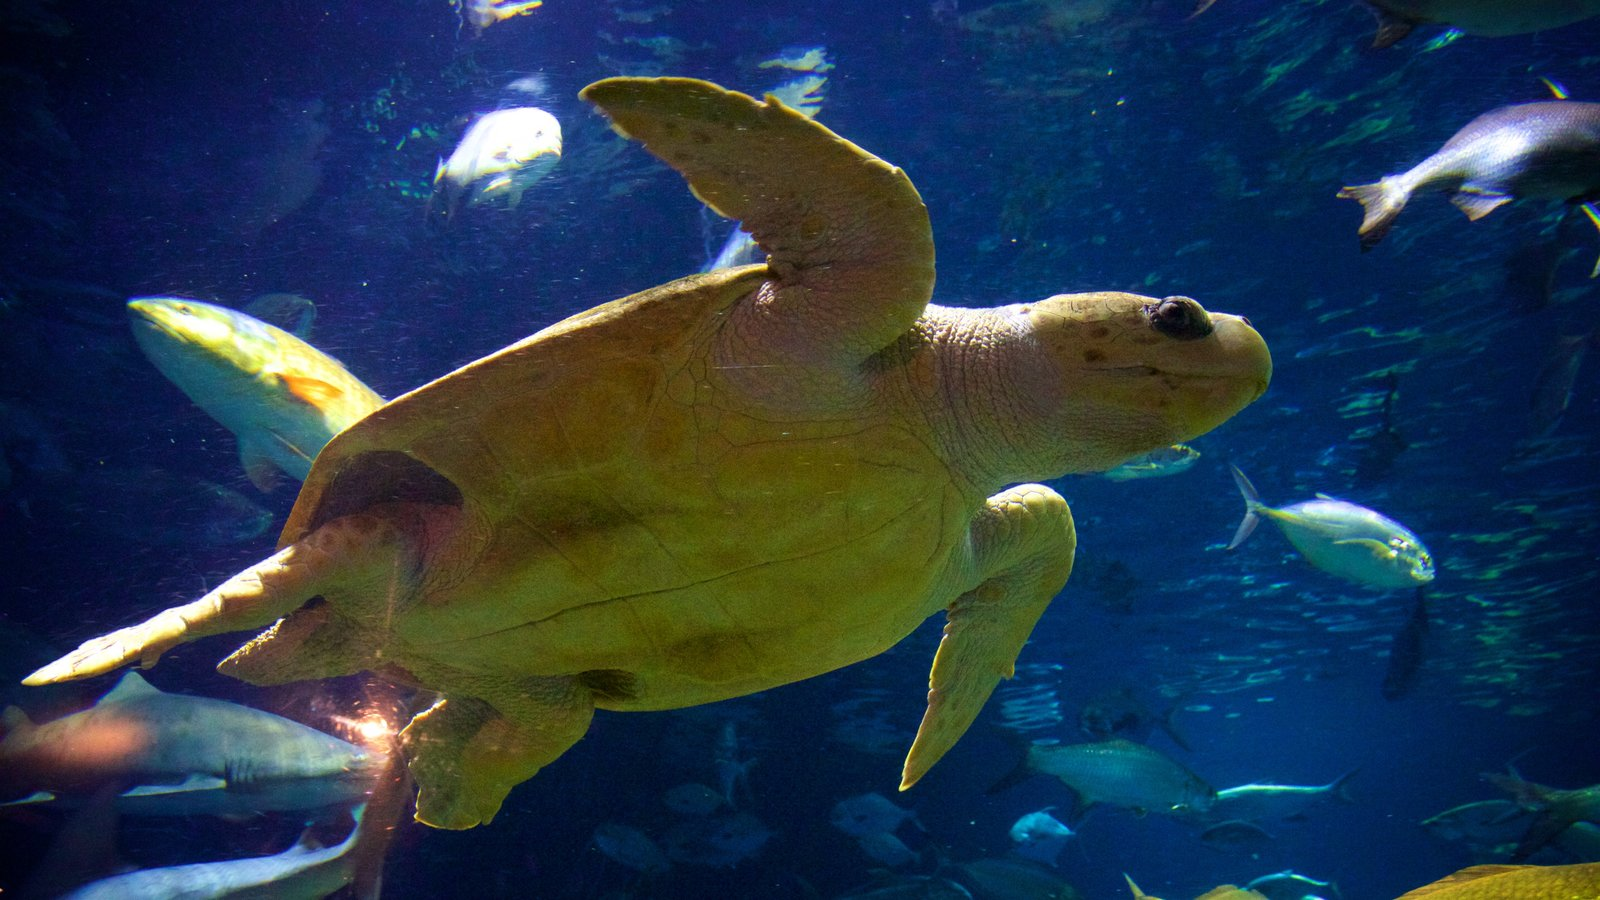 South Carolina Aquarium caracterizando vida marinha